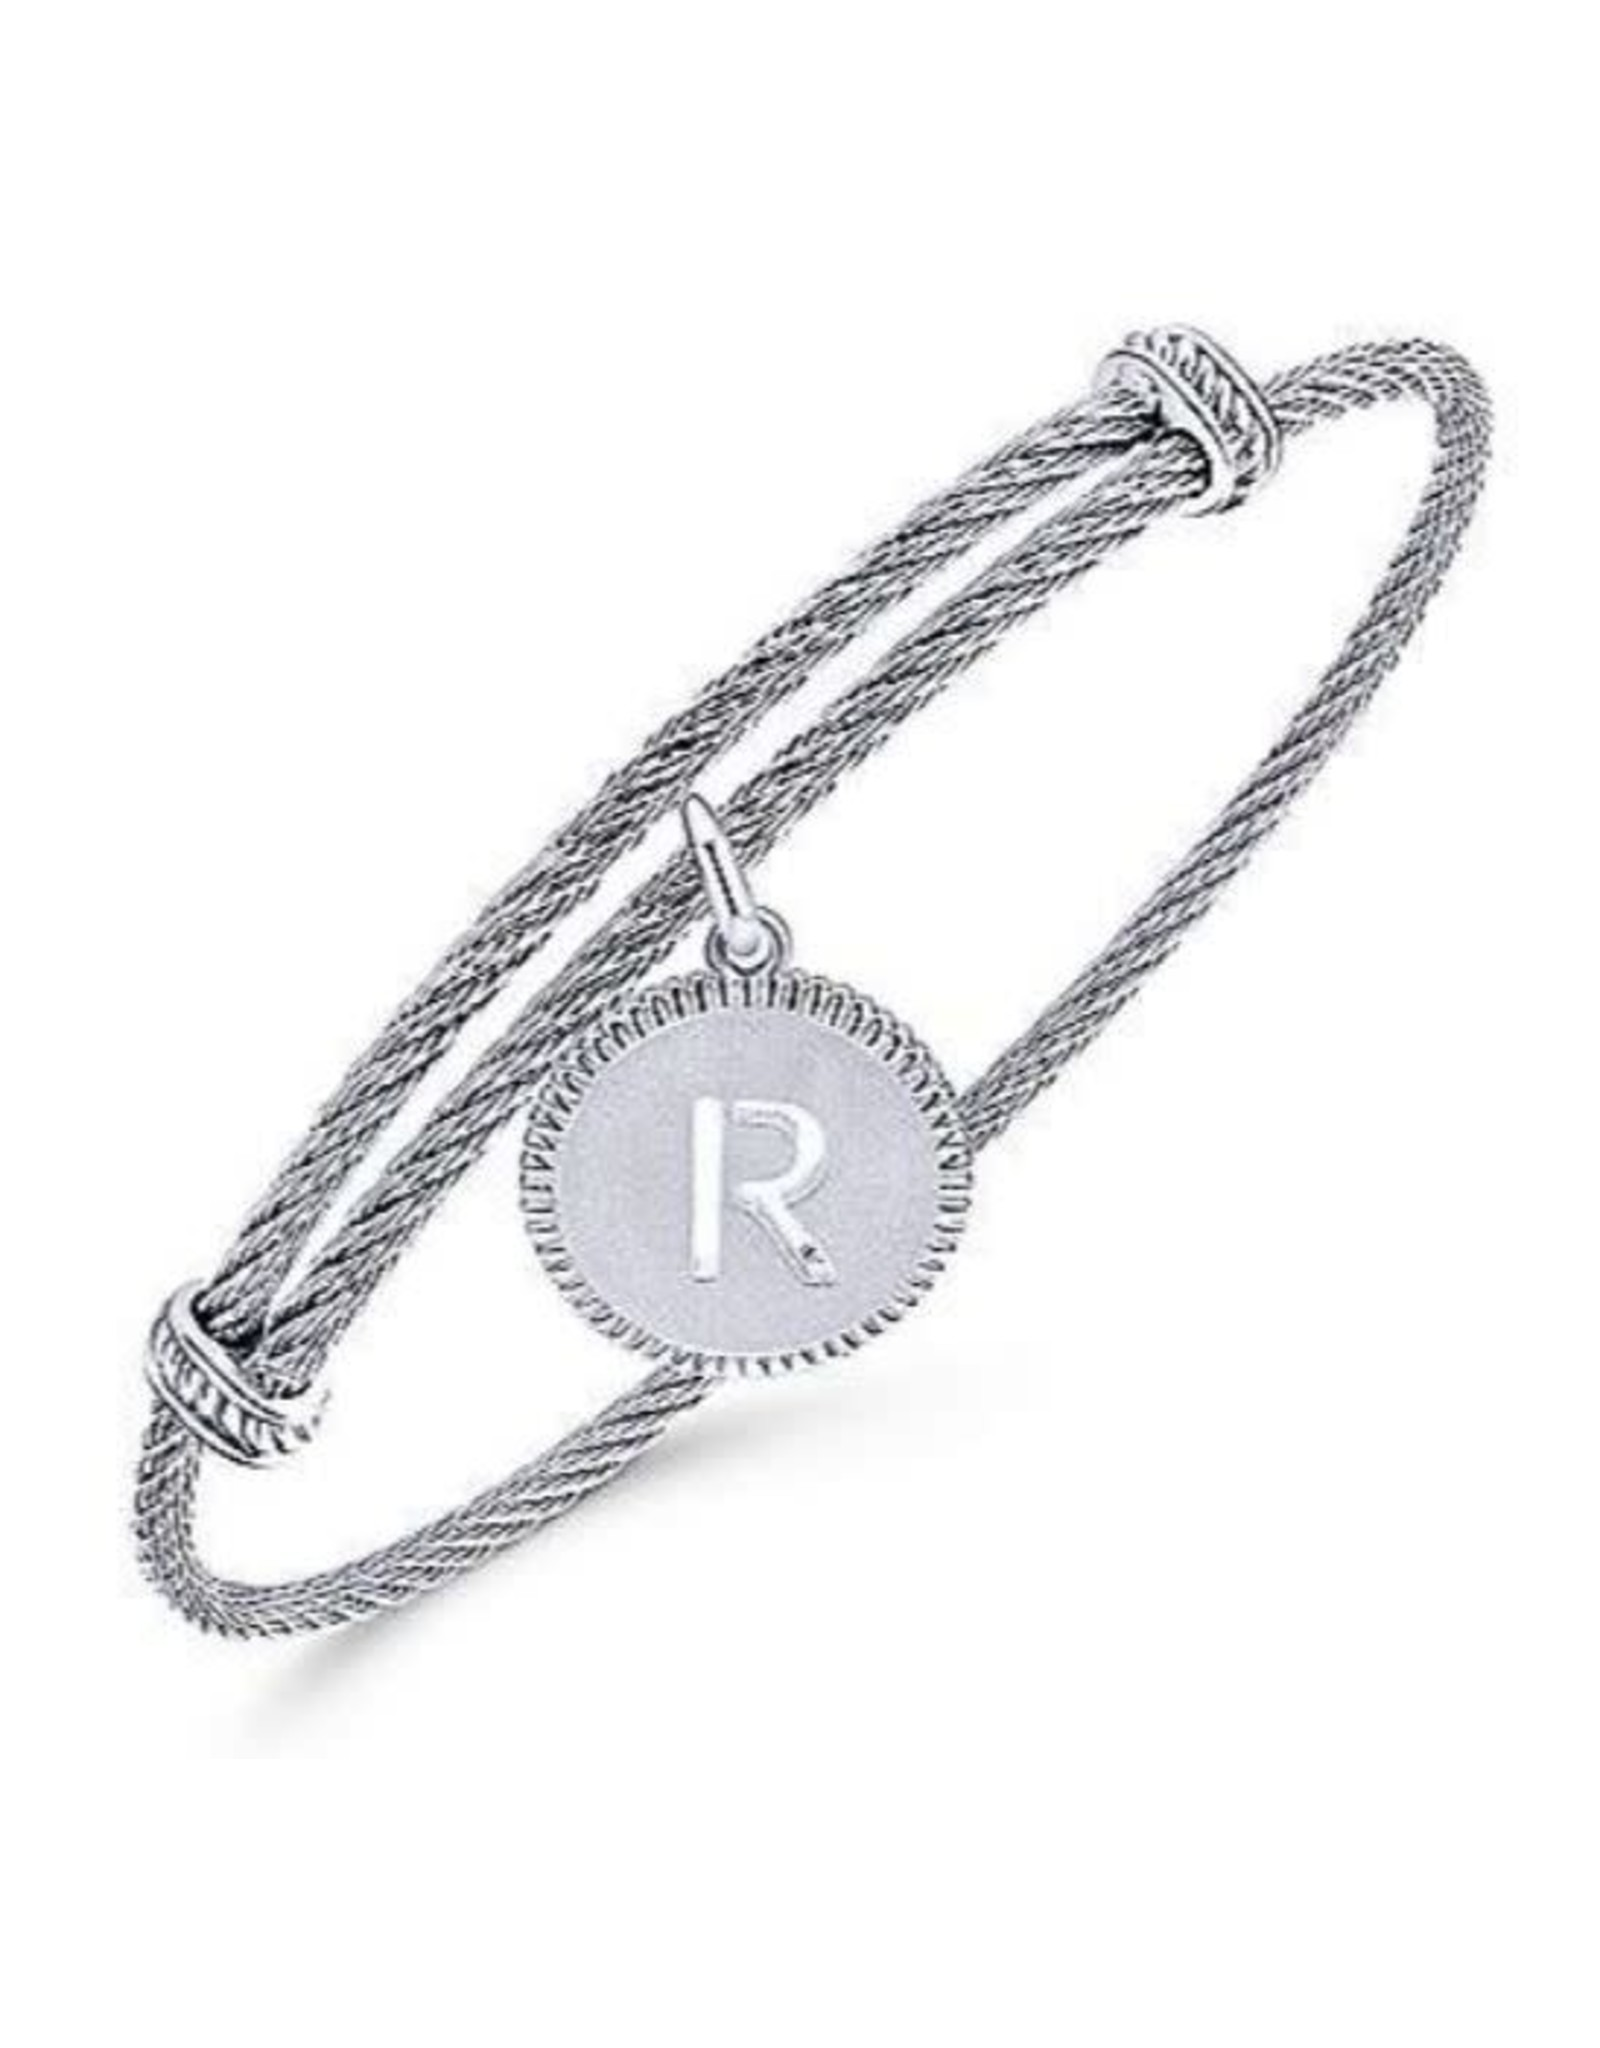 Adjustable Twisted Cable Stainless Steel Bangle with Sterling Silver Initial Charm- BG3632